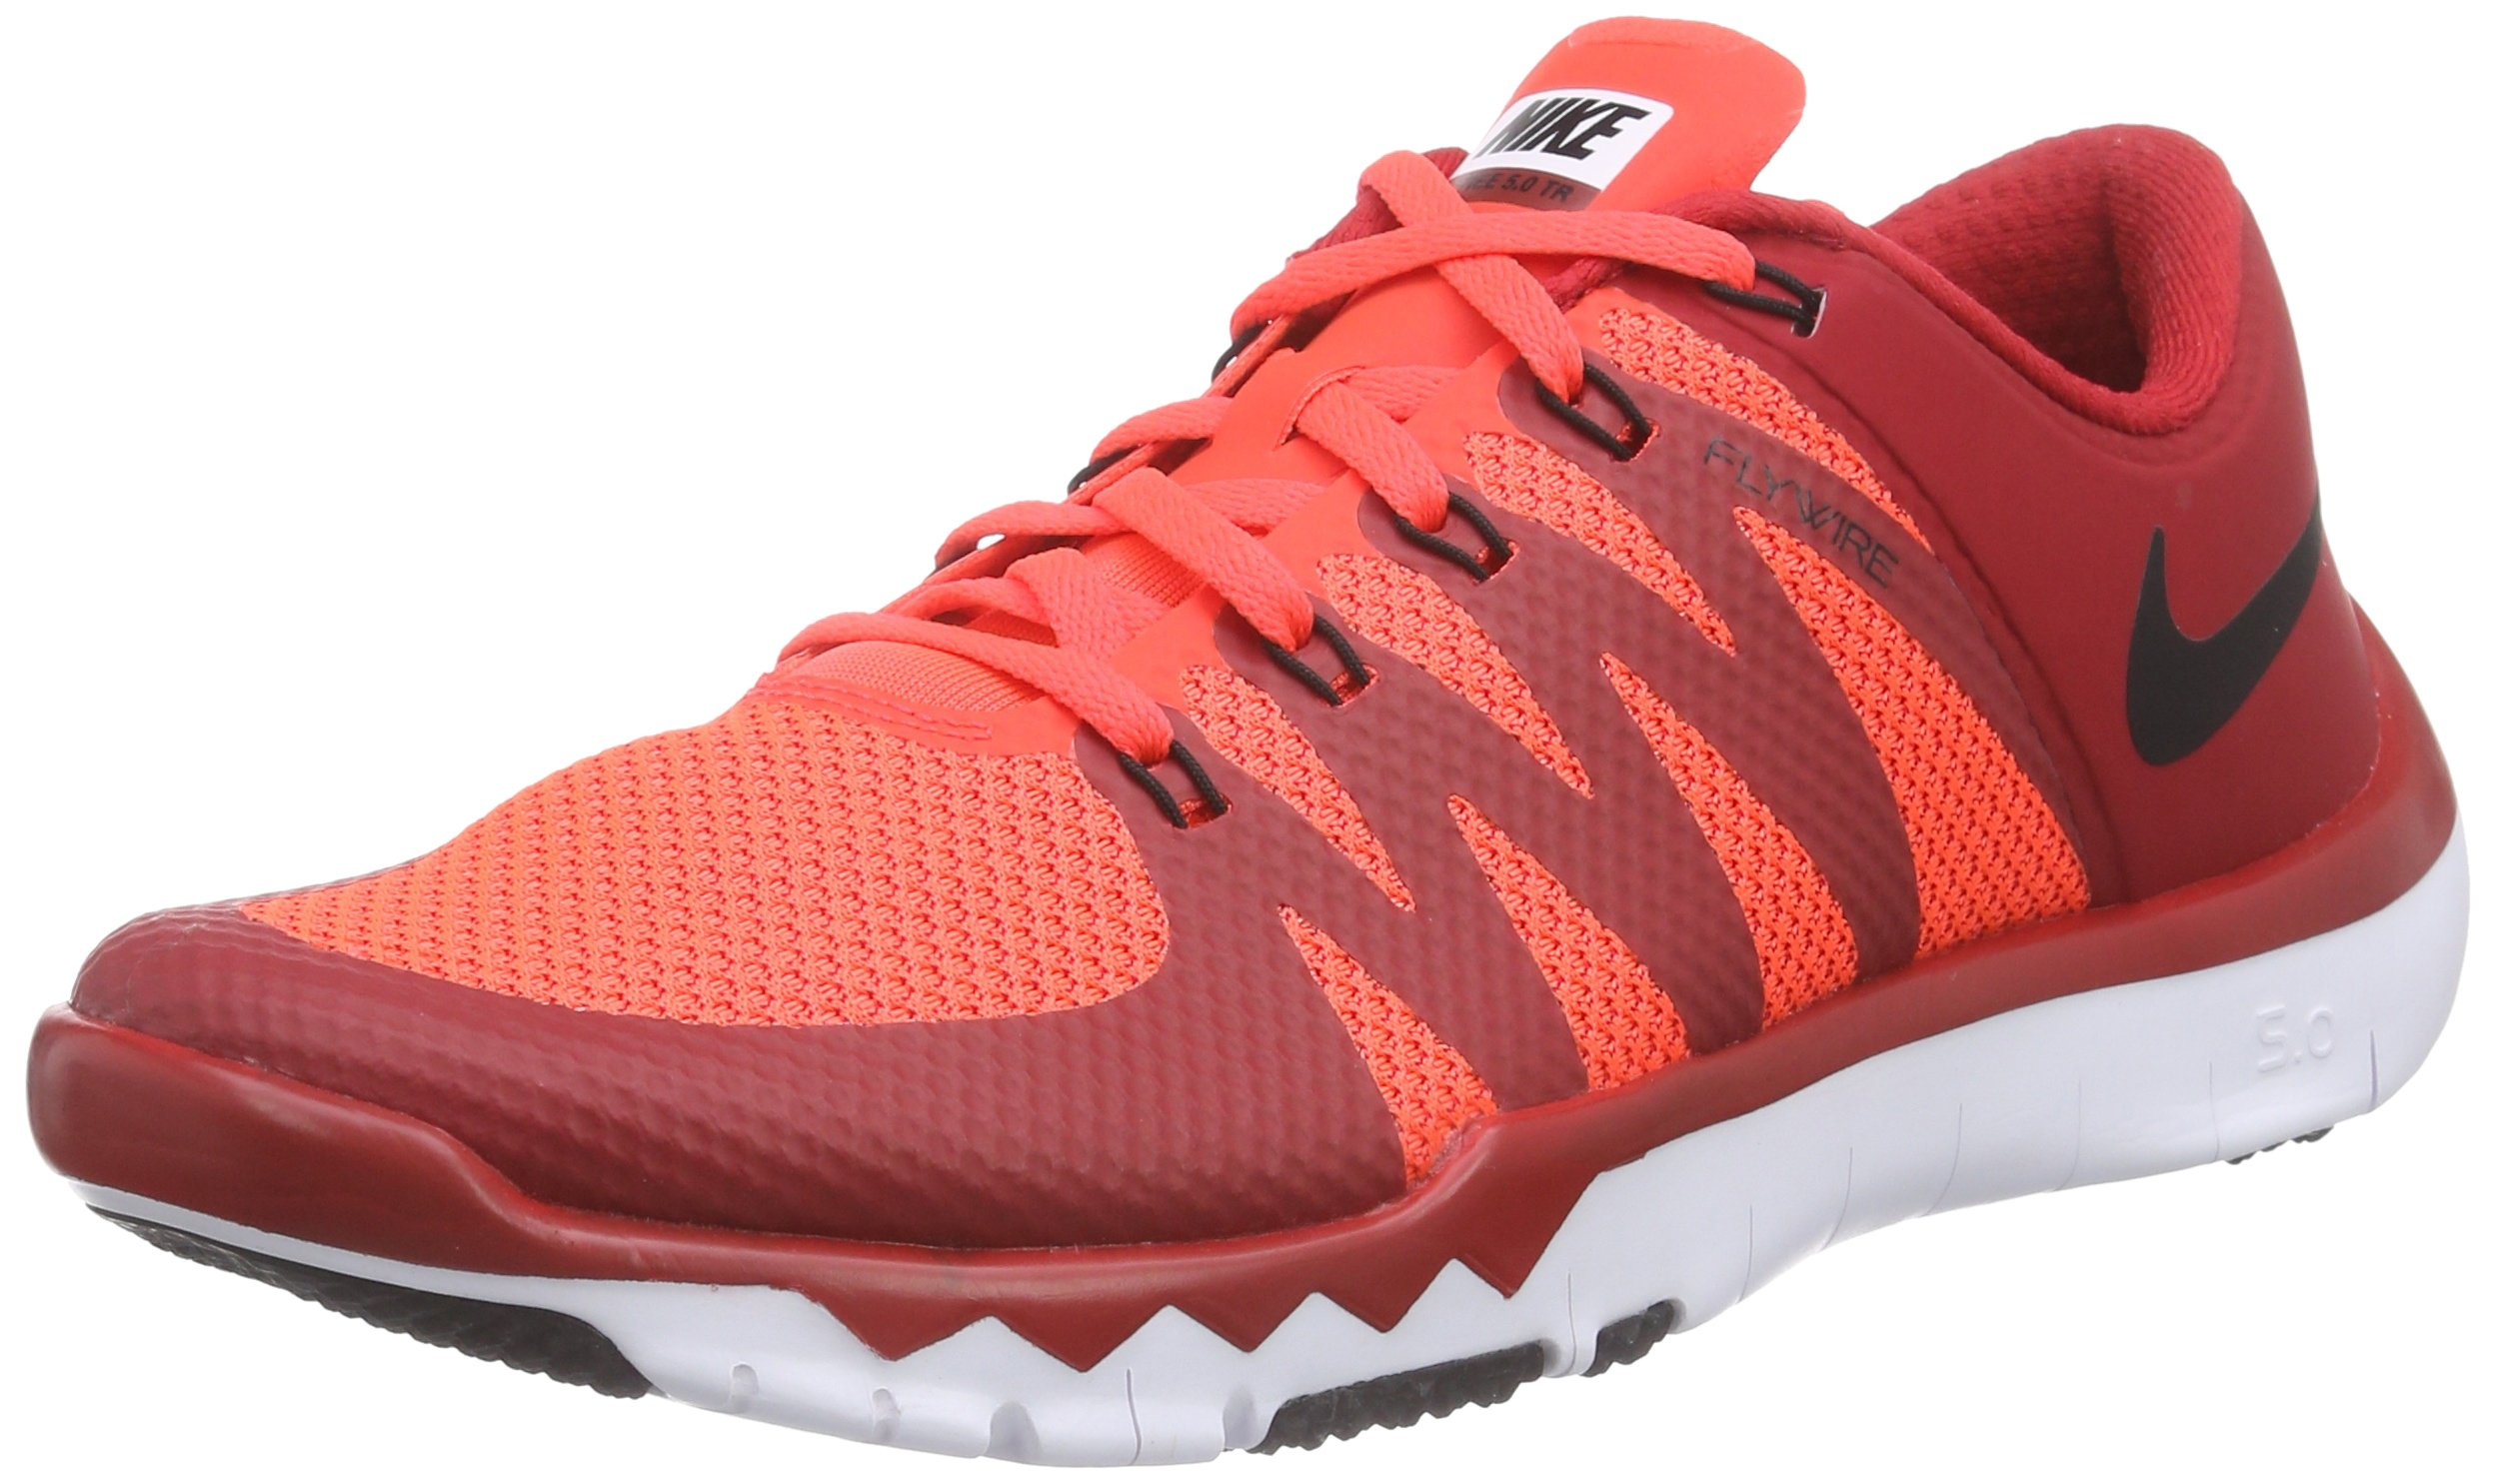 first rate c1bf3 f1620 Galleon - Nike Men s Free Trainer 5.0 V6 Gym Red Blk Brght Crmsn White Running  Shoe 8.5 Men US